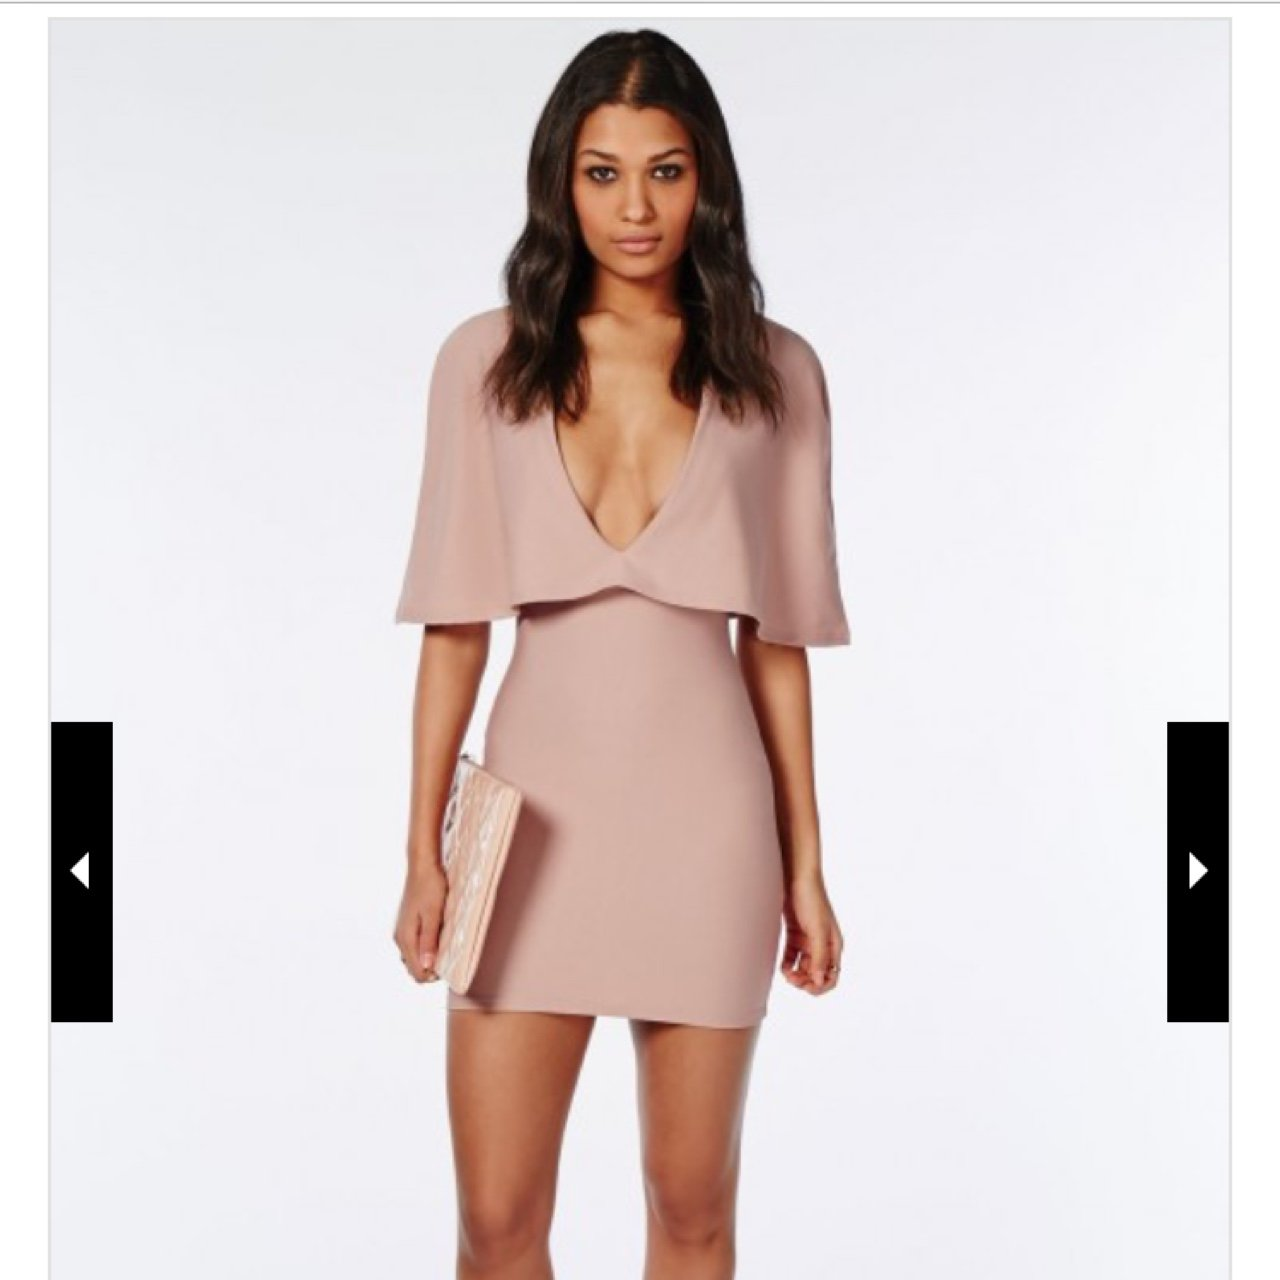 cf4845df04 Gorgeous missguided plunging bandage dress.